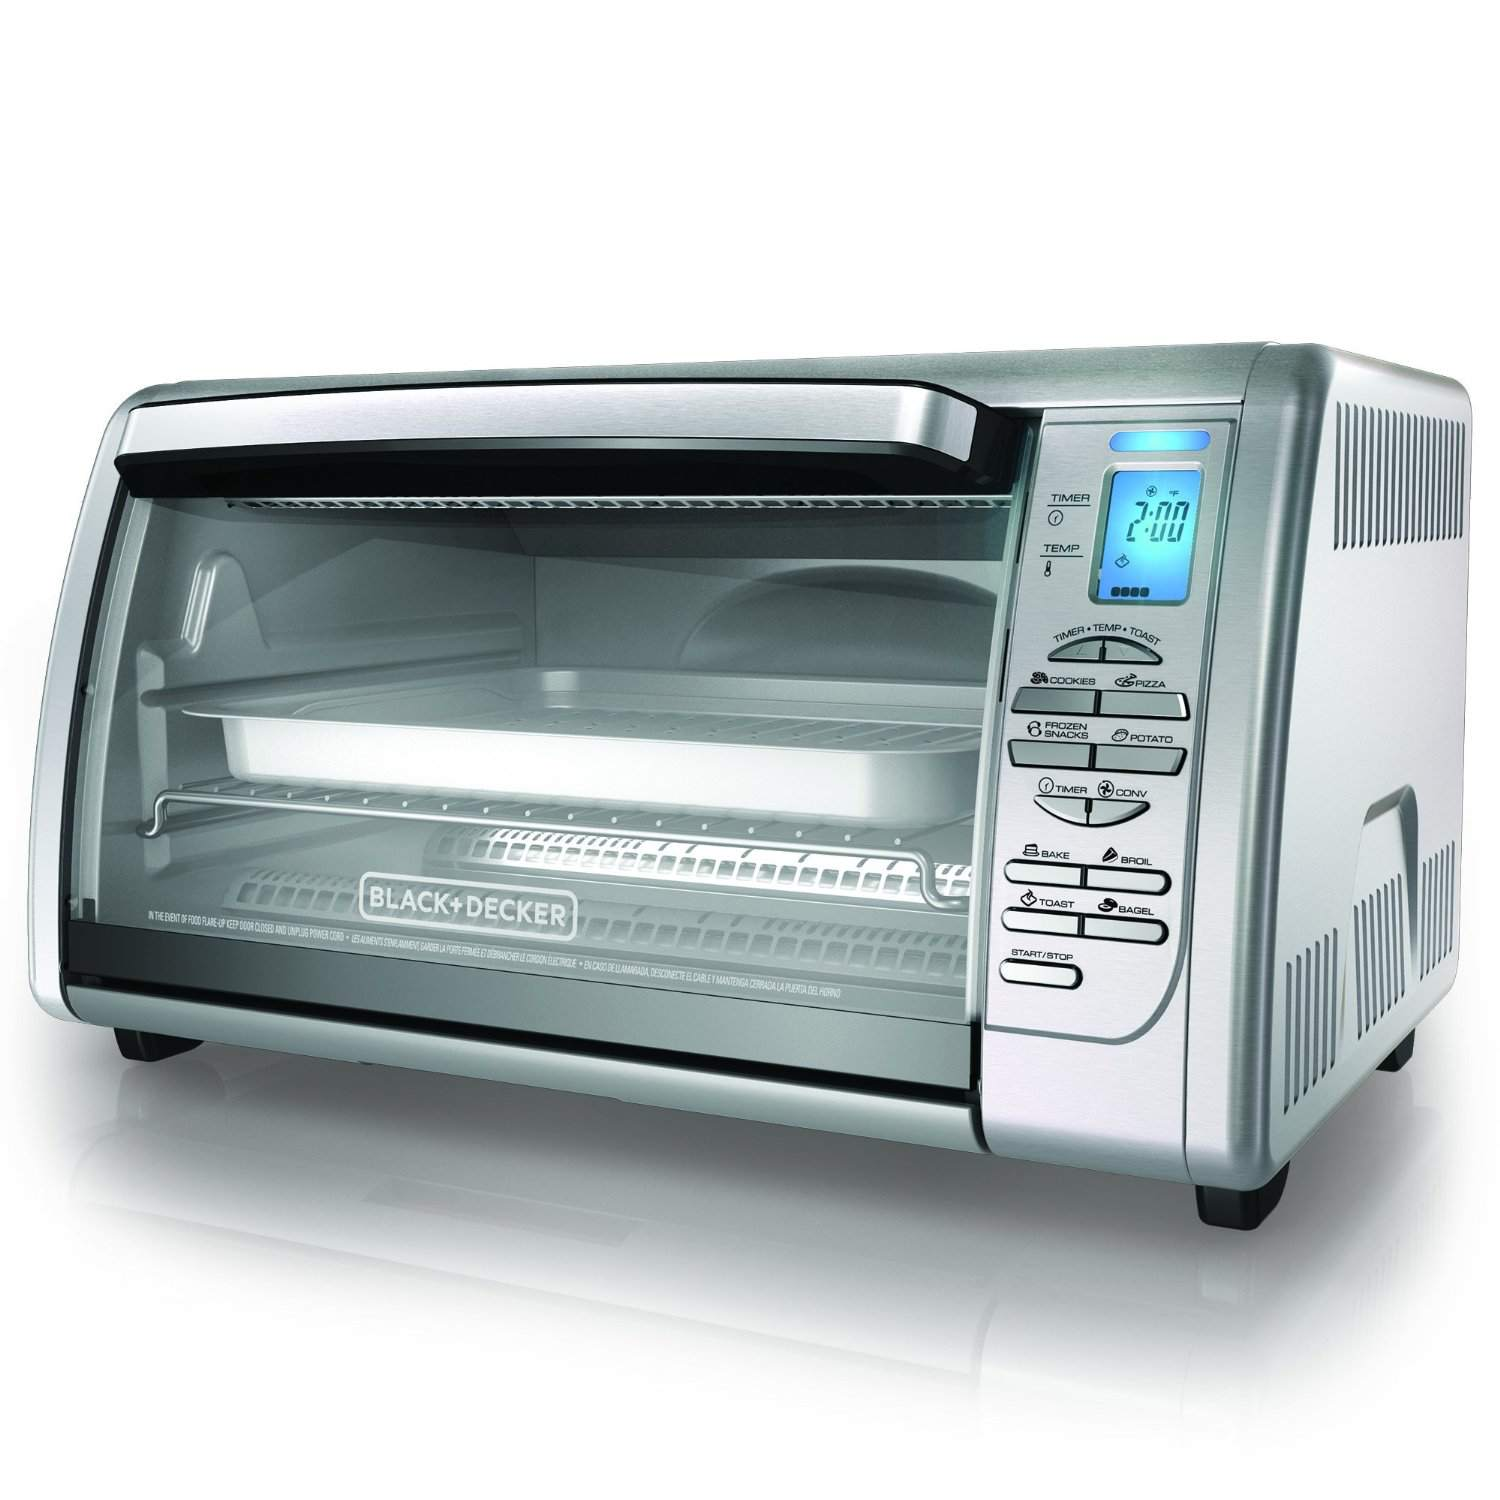 for ovens best reviewed oven sale toaster updated